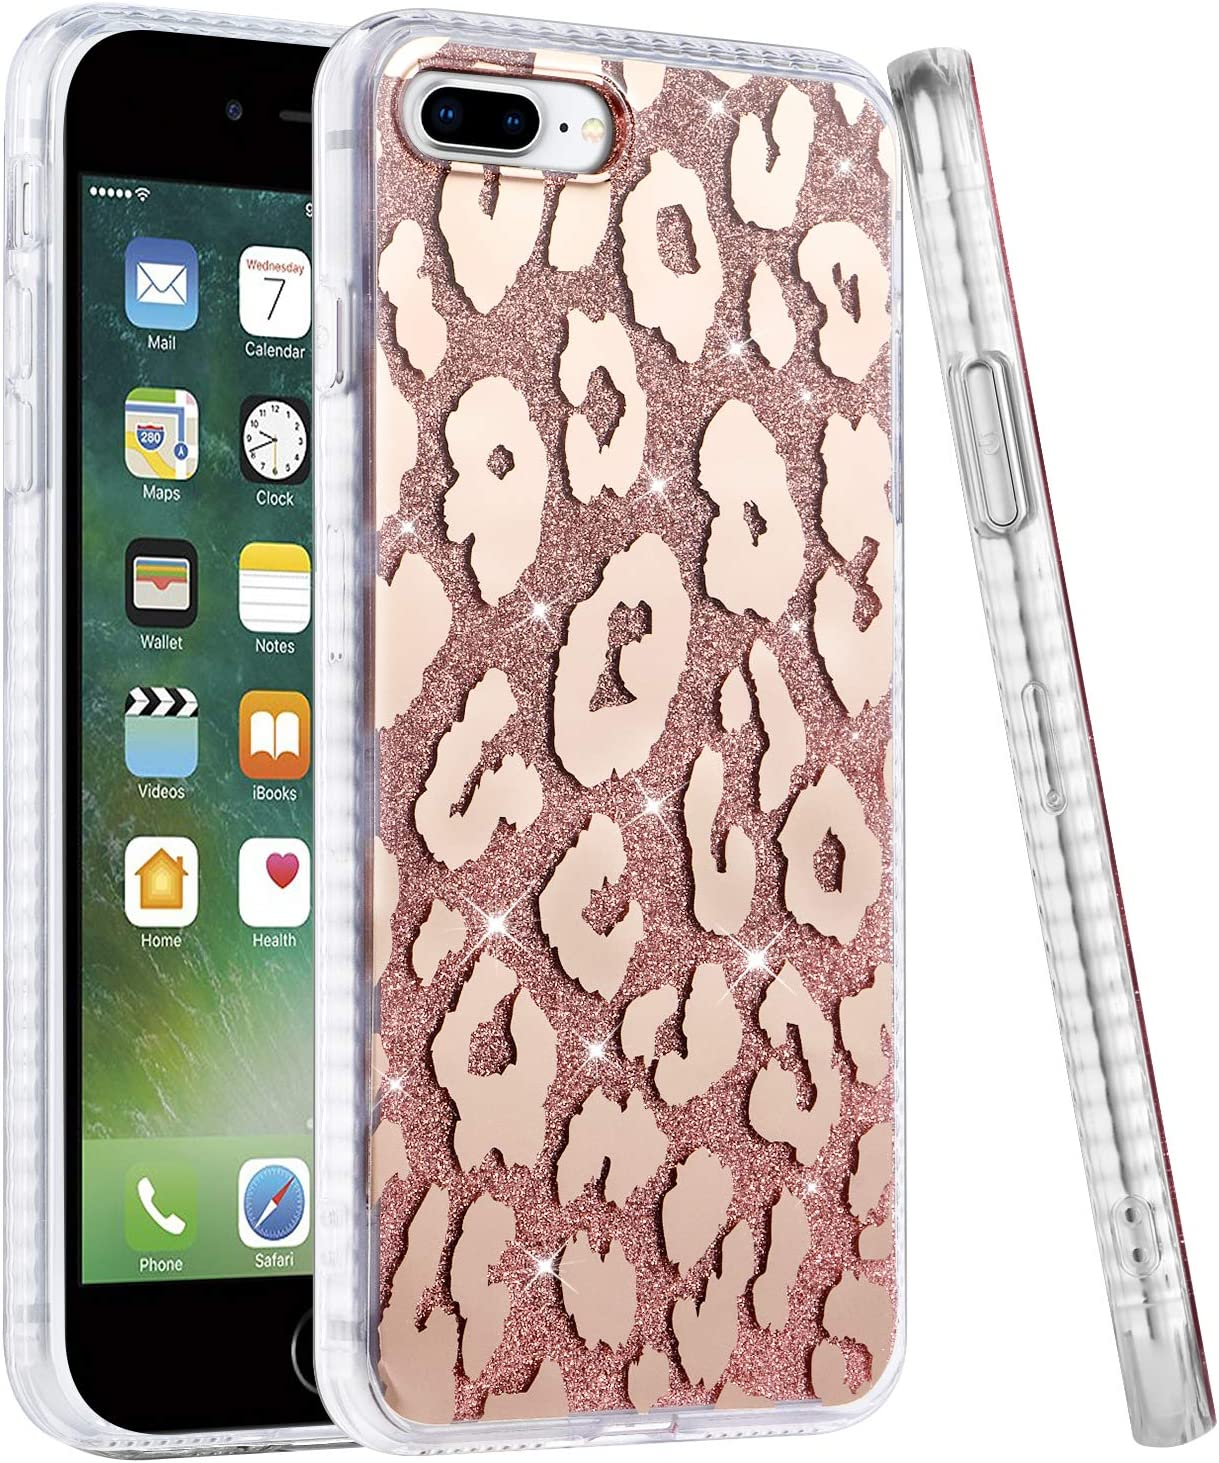 TEAUGHT iPhone 7 Plus Case, iPhone 8 Plus Case 5.5 Inch Leopard Patterns Rose Gold Glitter Sparkle Design for Girls Women Slim Soft Bumper Clear Edge Full Protection Bling Hard Back Cover